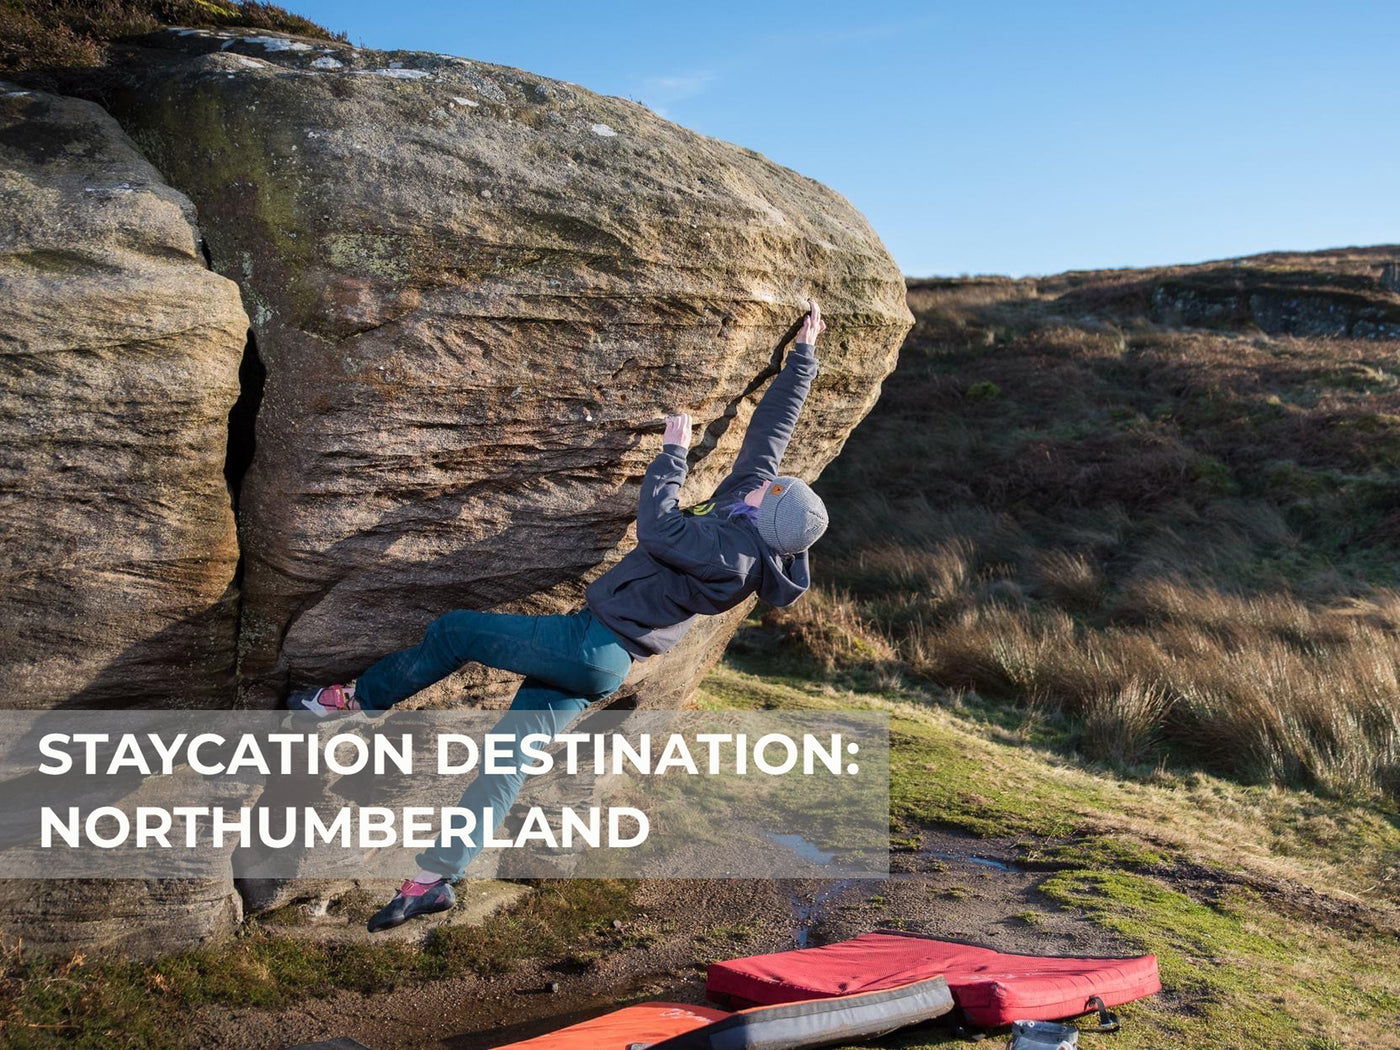 Staycation Destination: Northumberland Bouldering